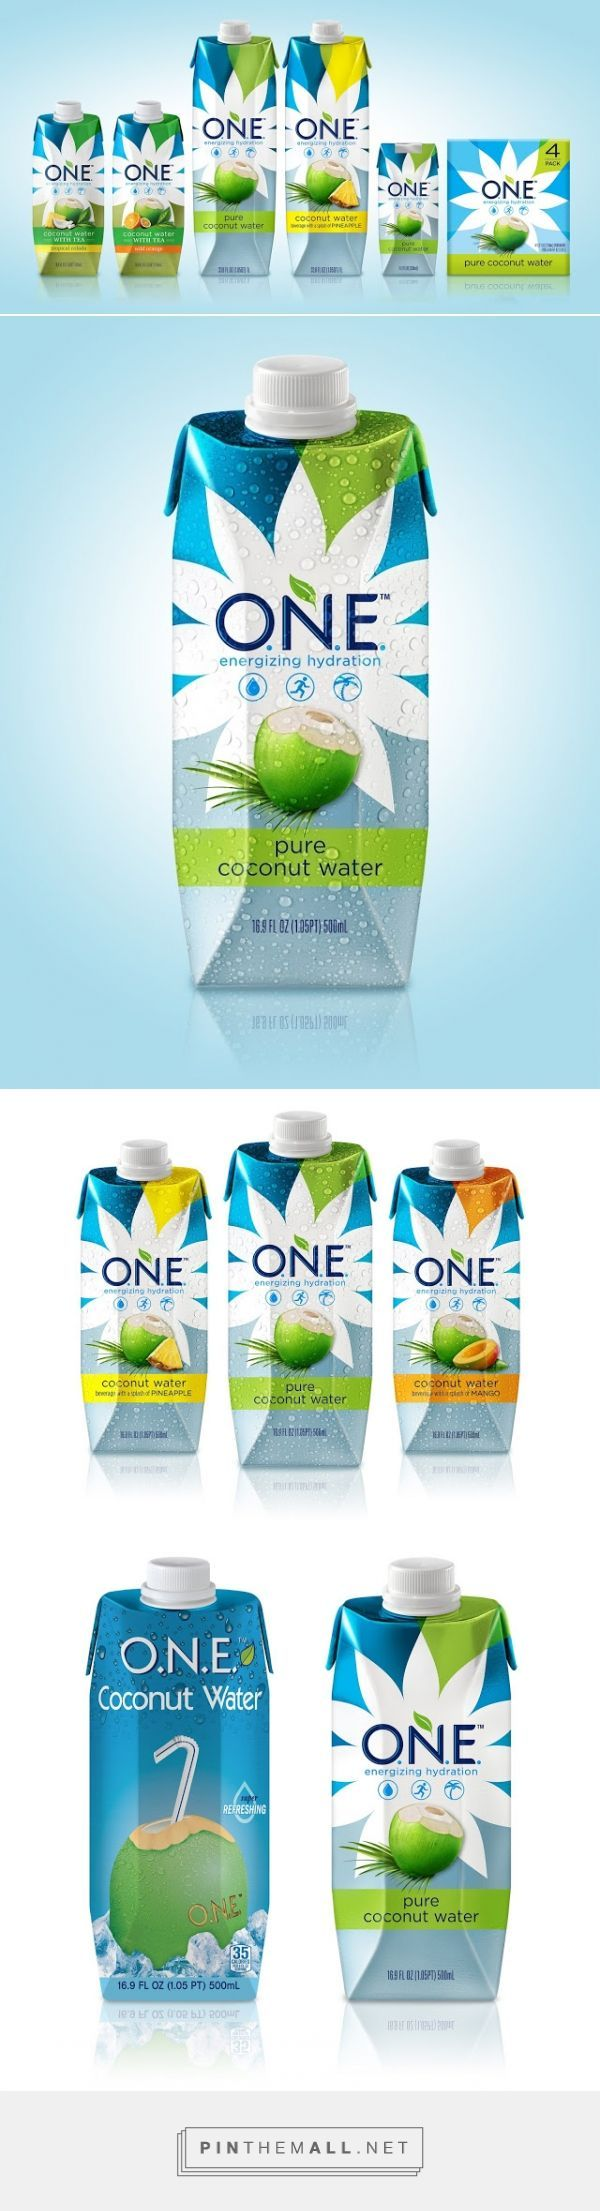 ONE Coconut Water Packaging designed by Voicebox Creative - http://www.packagingoftheworld.com/2015/11/one-coconut-water.html: